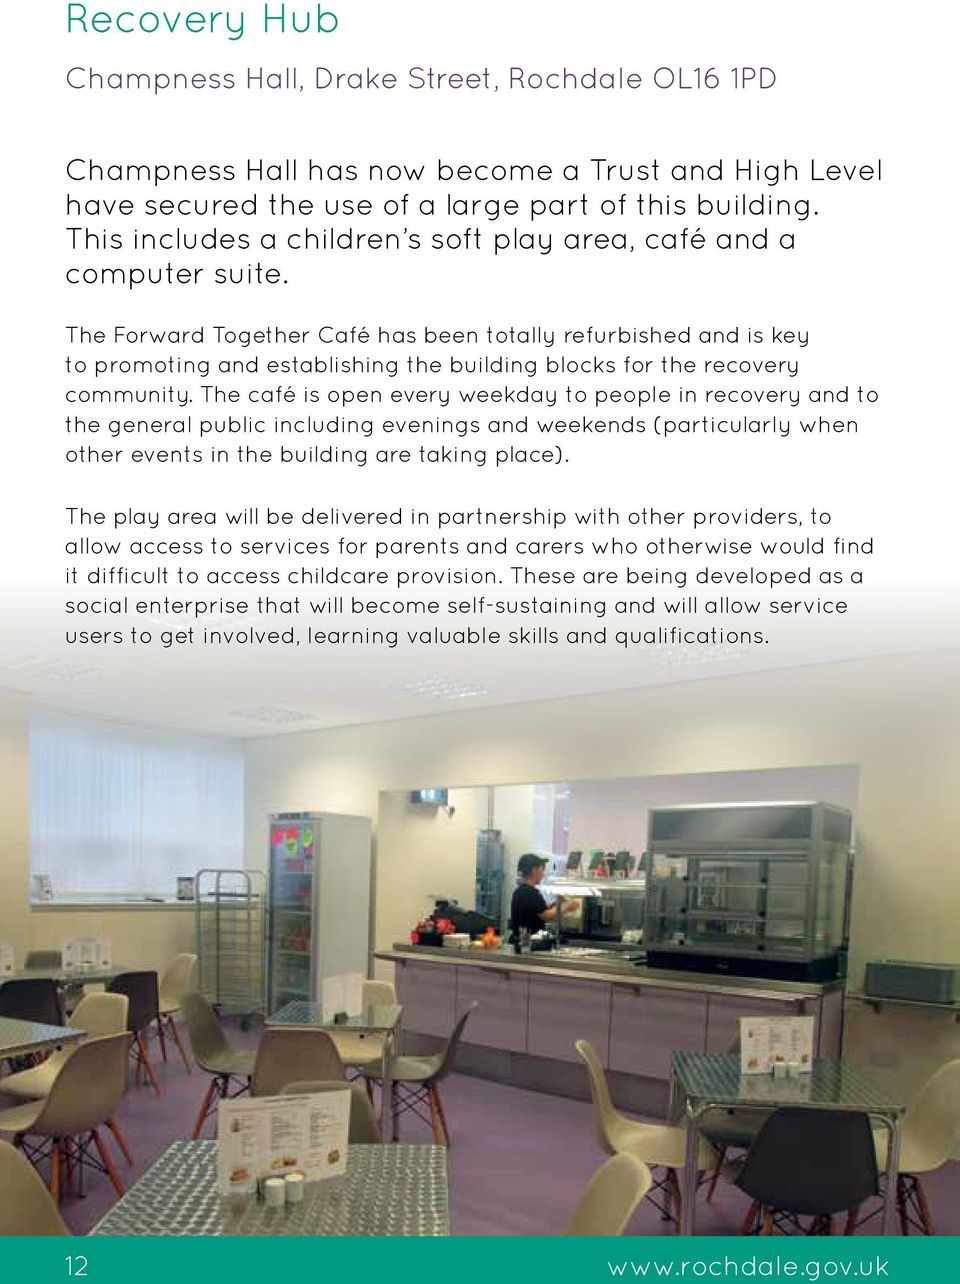 The Forward Together Café has been totally refurbished and is key to promoting and establishing the building blocks for the recovery community.